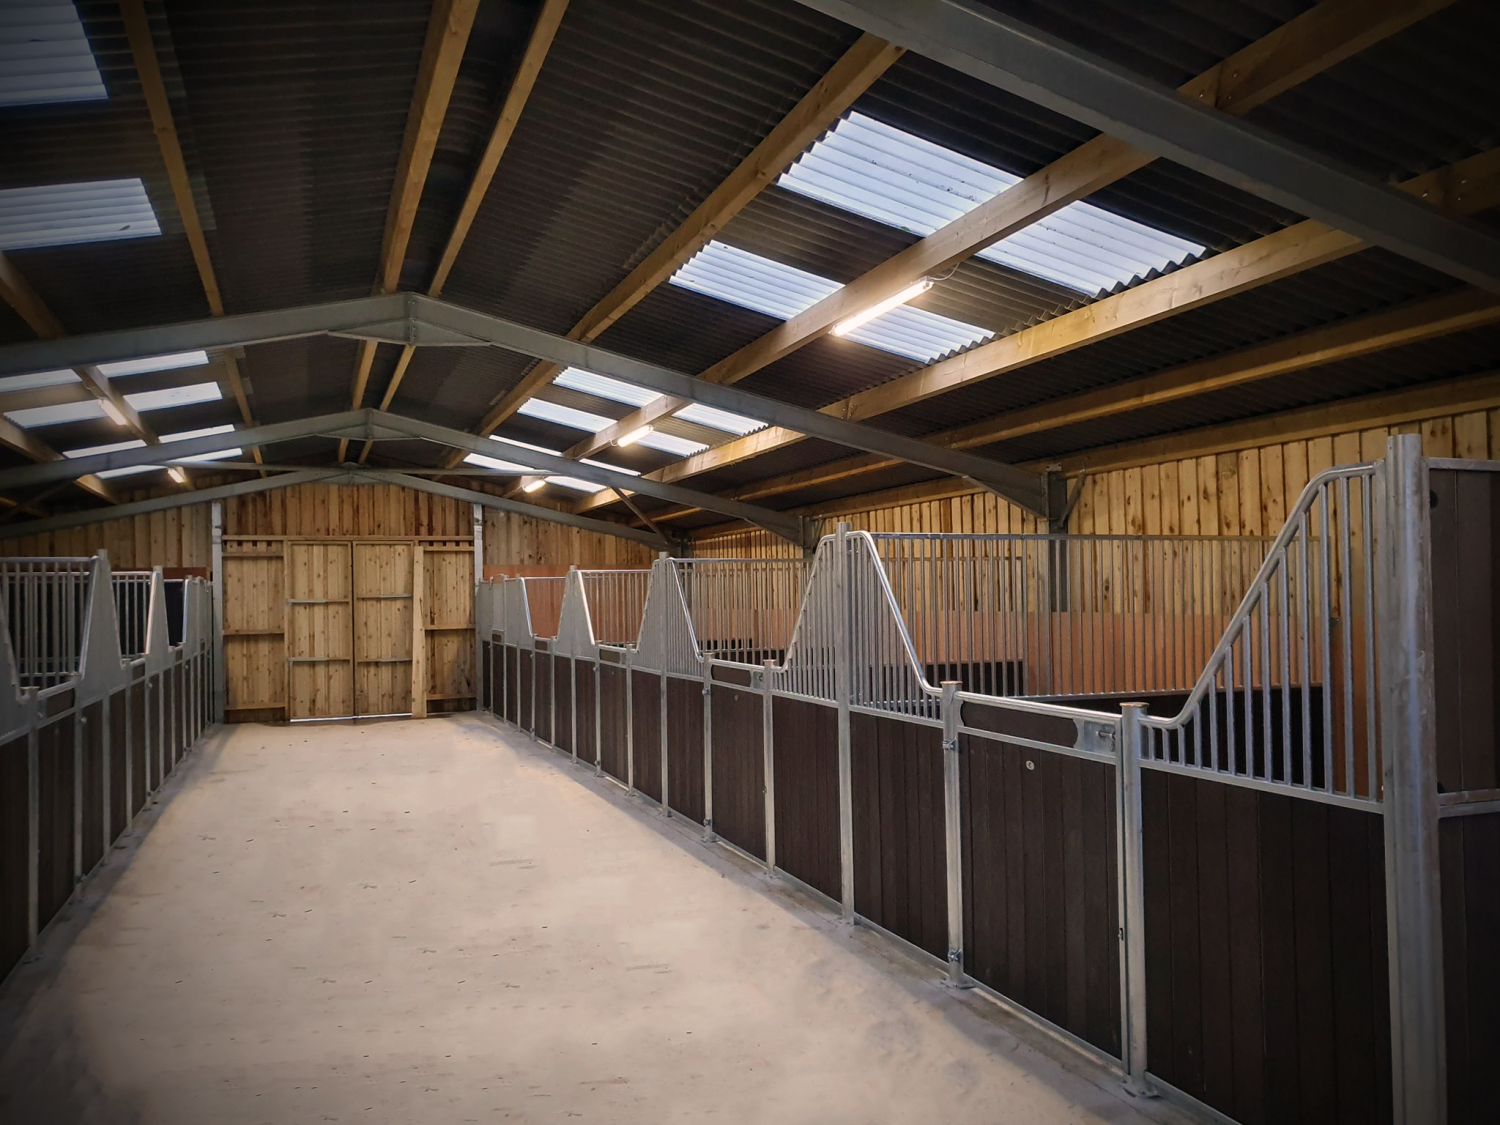 Internal Stables